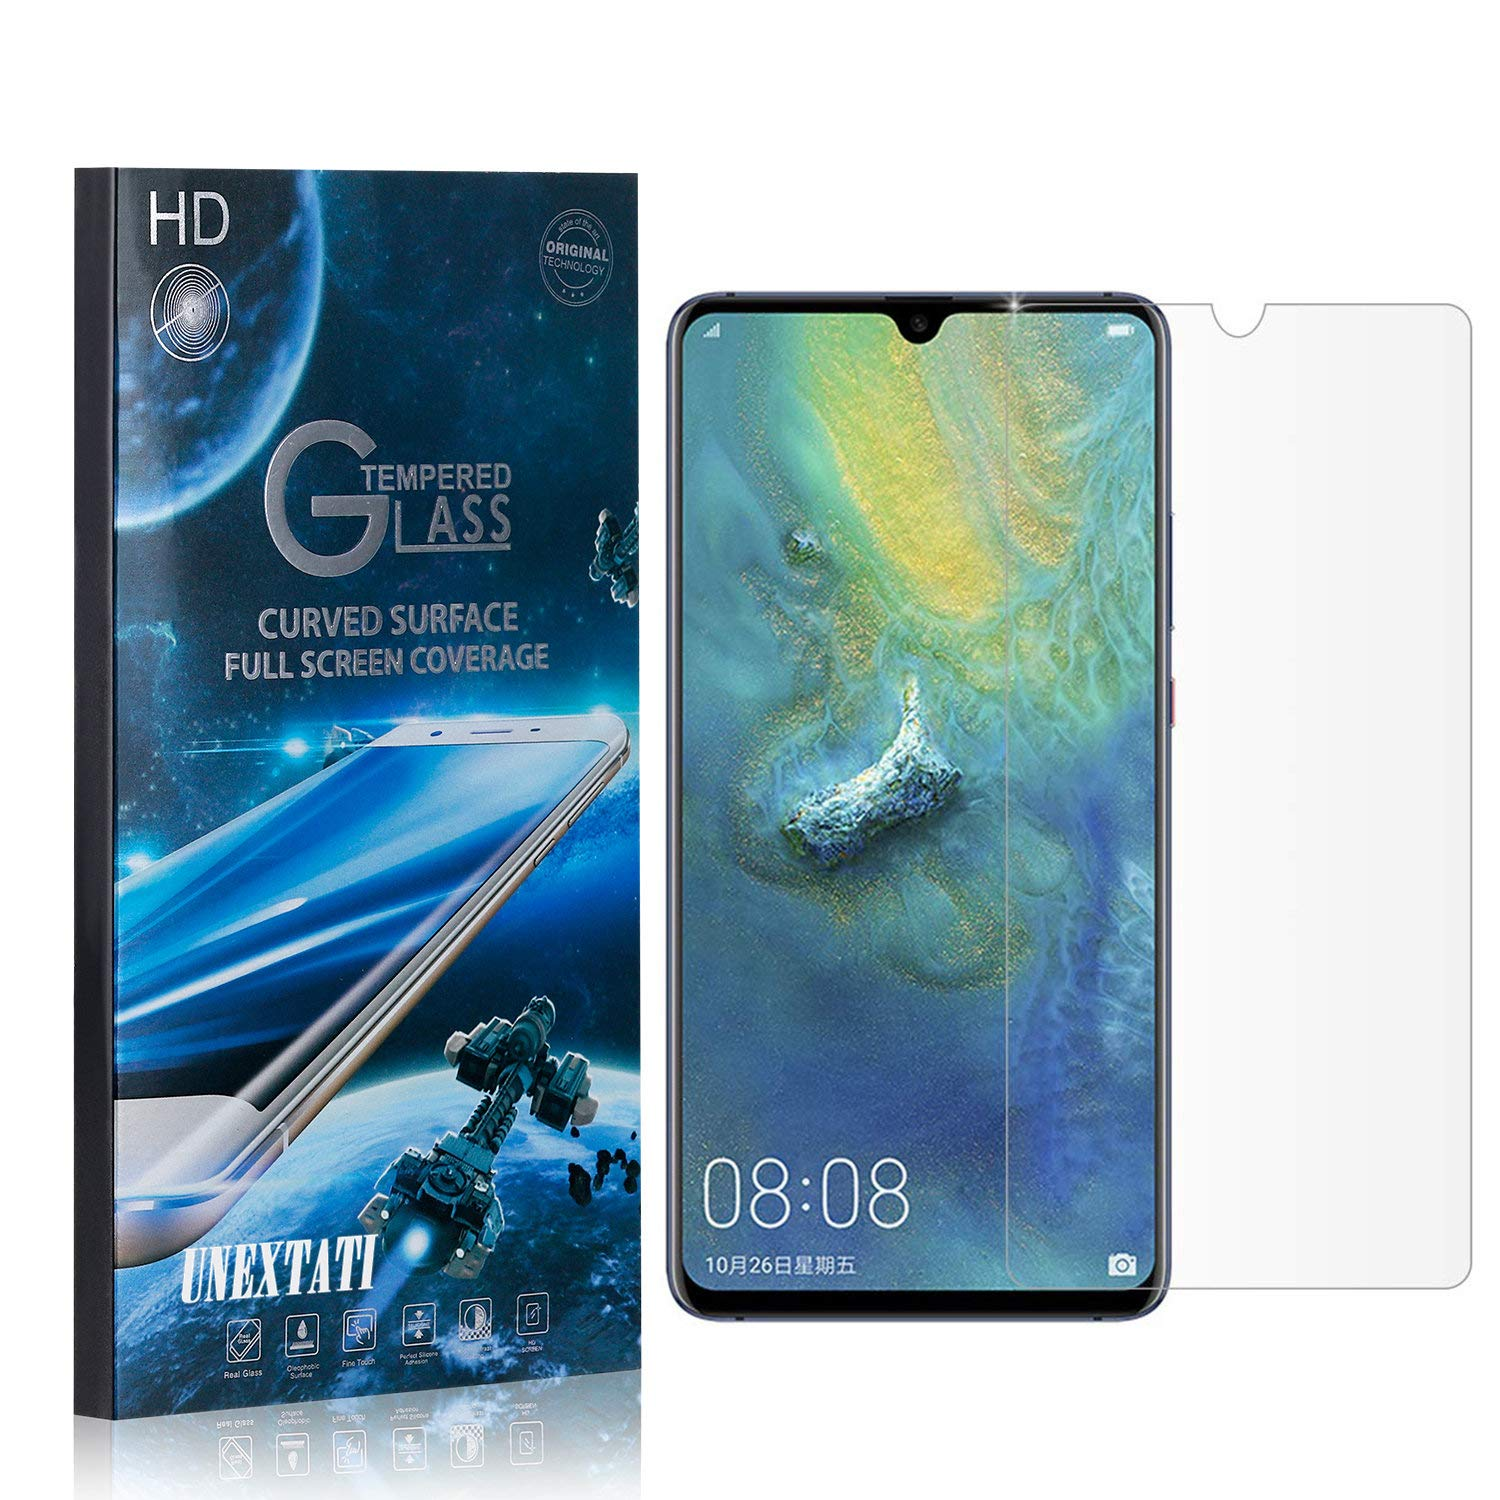 Bubble Free 2 Pack CUSKING Screen Protector for Galaxy S20 Ultra 9H Hardness HD Crystal Clear Tempered Glass Screen Protector for Samsung Galaxy S20 Ultra